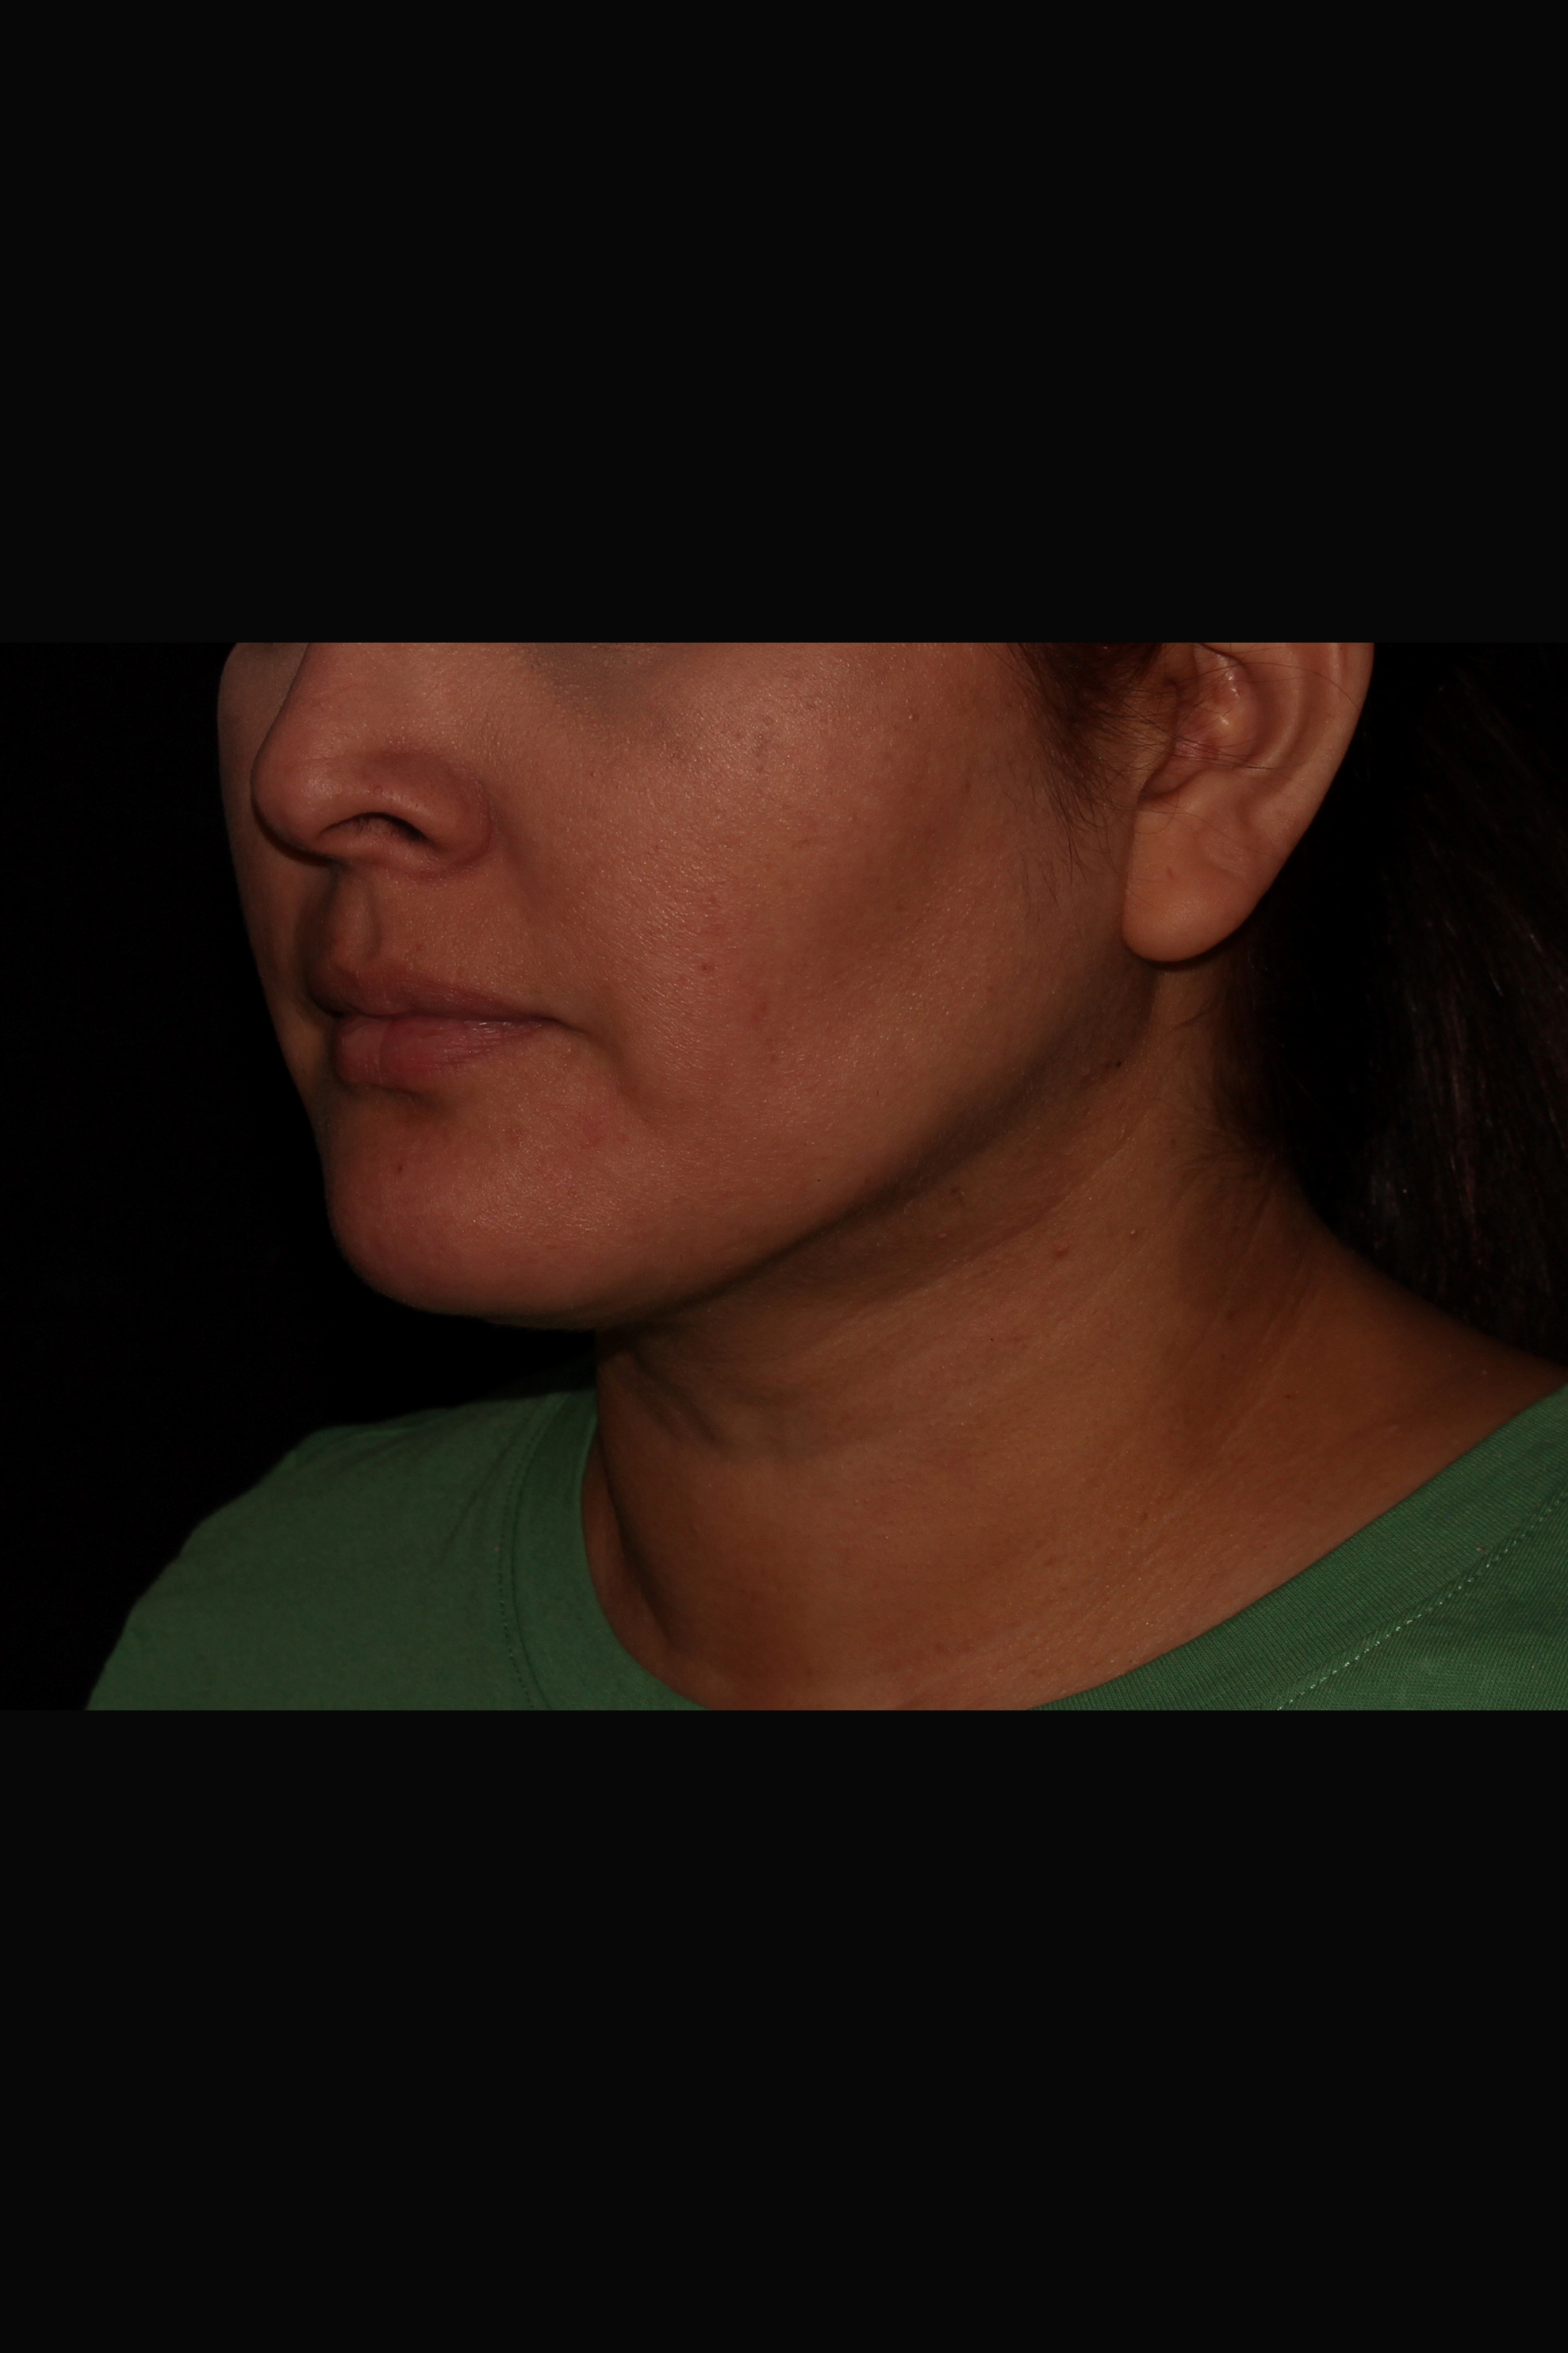 After Neck Liposuction - Neck Liposuction, Magic Tight & Buccal Fat Pad Removal